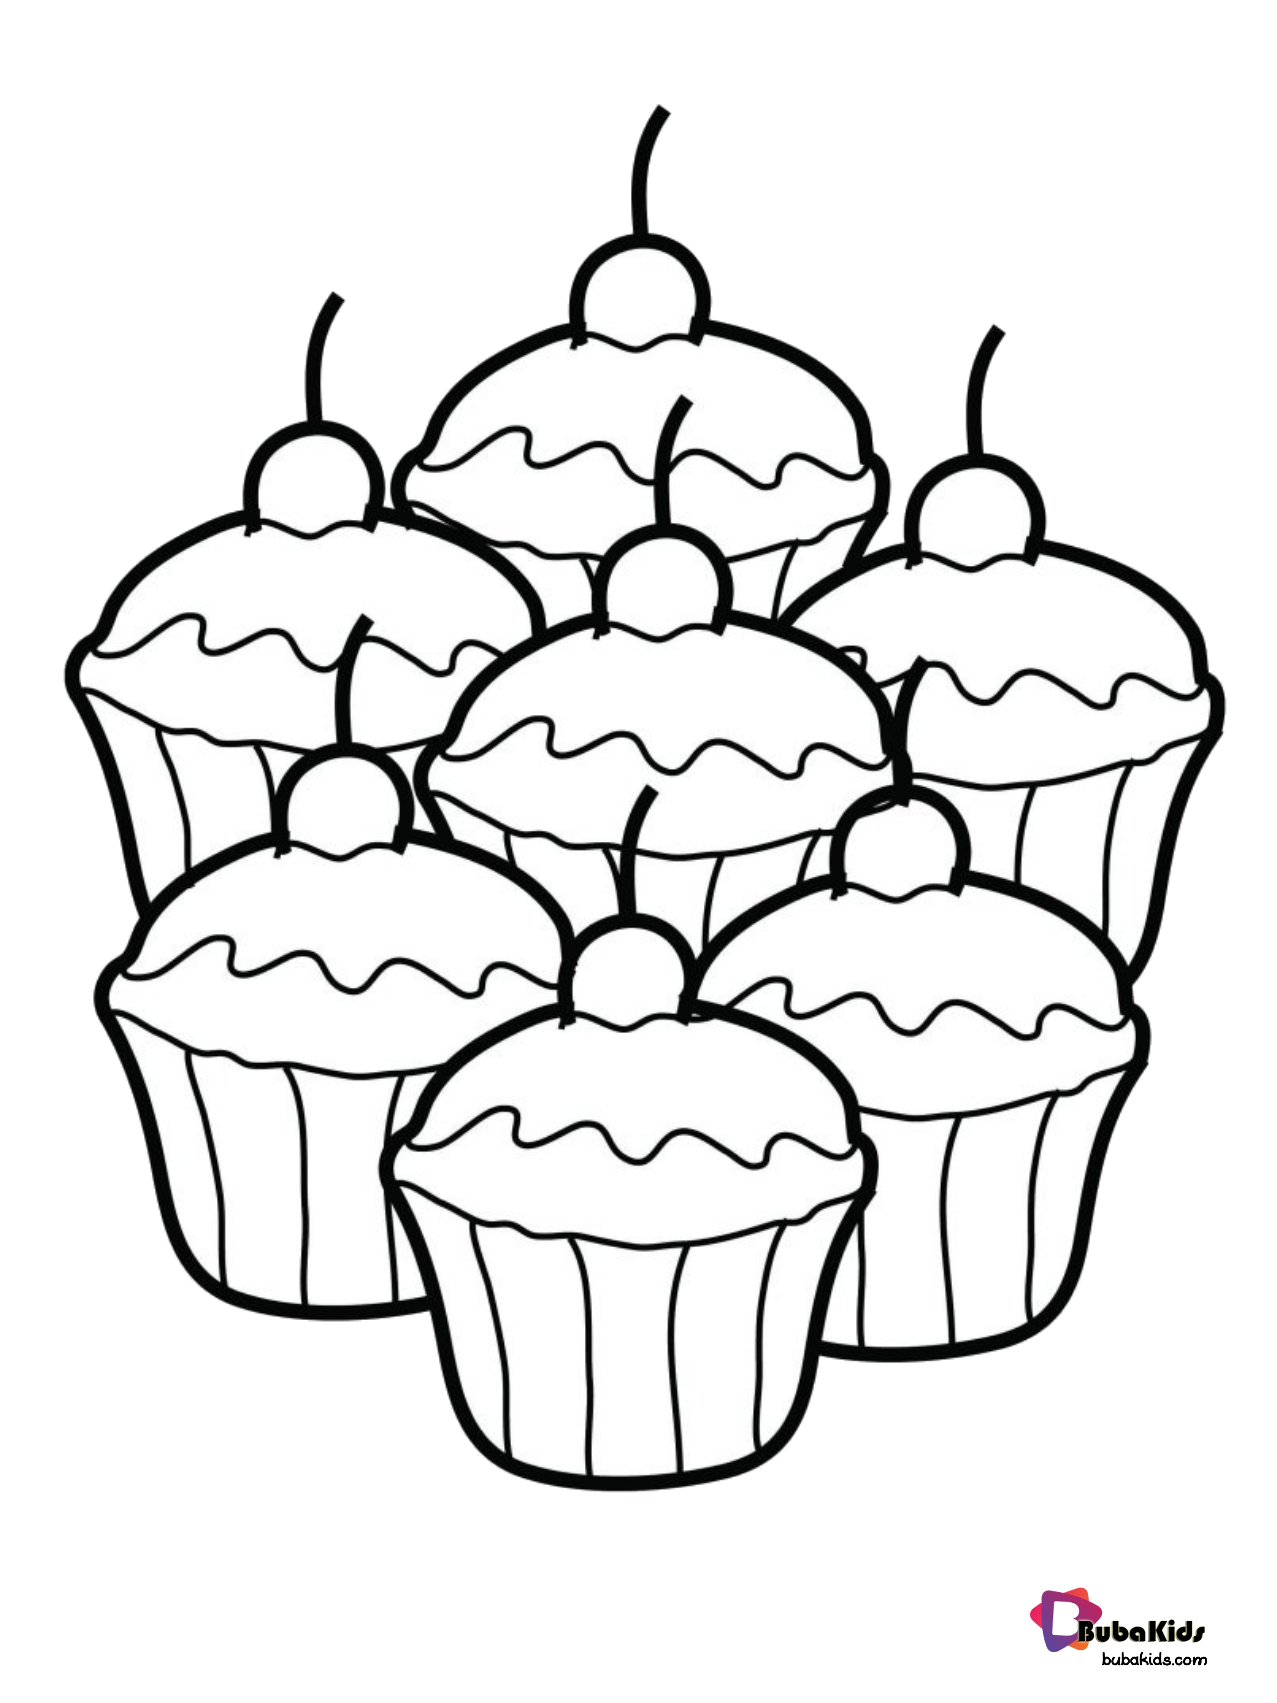 Easy coloring Food coloring page cupcakes. Wallpaper